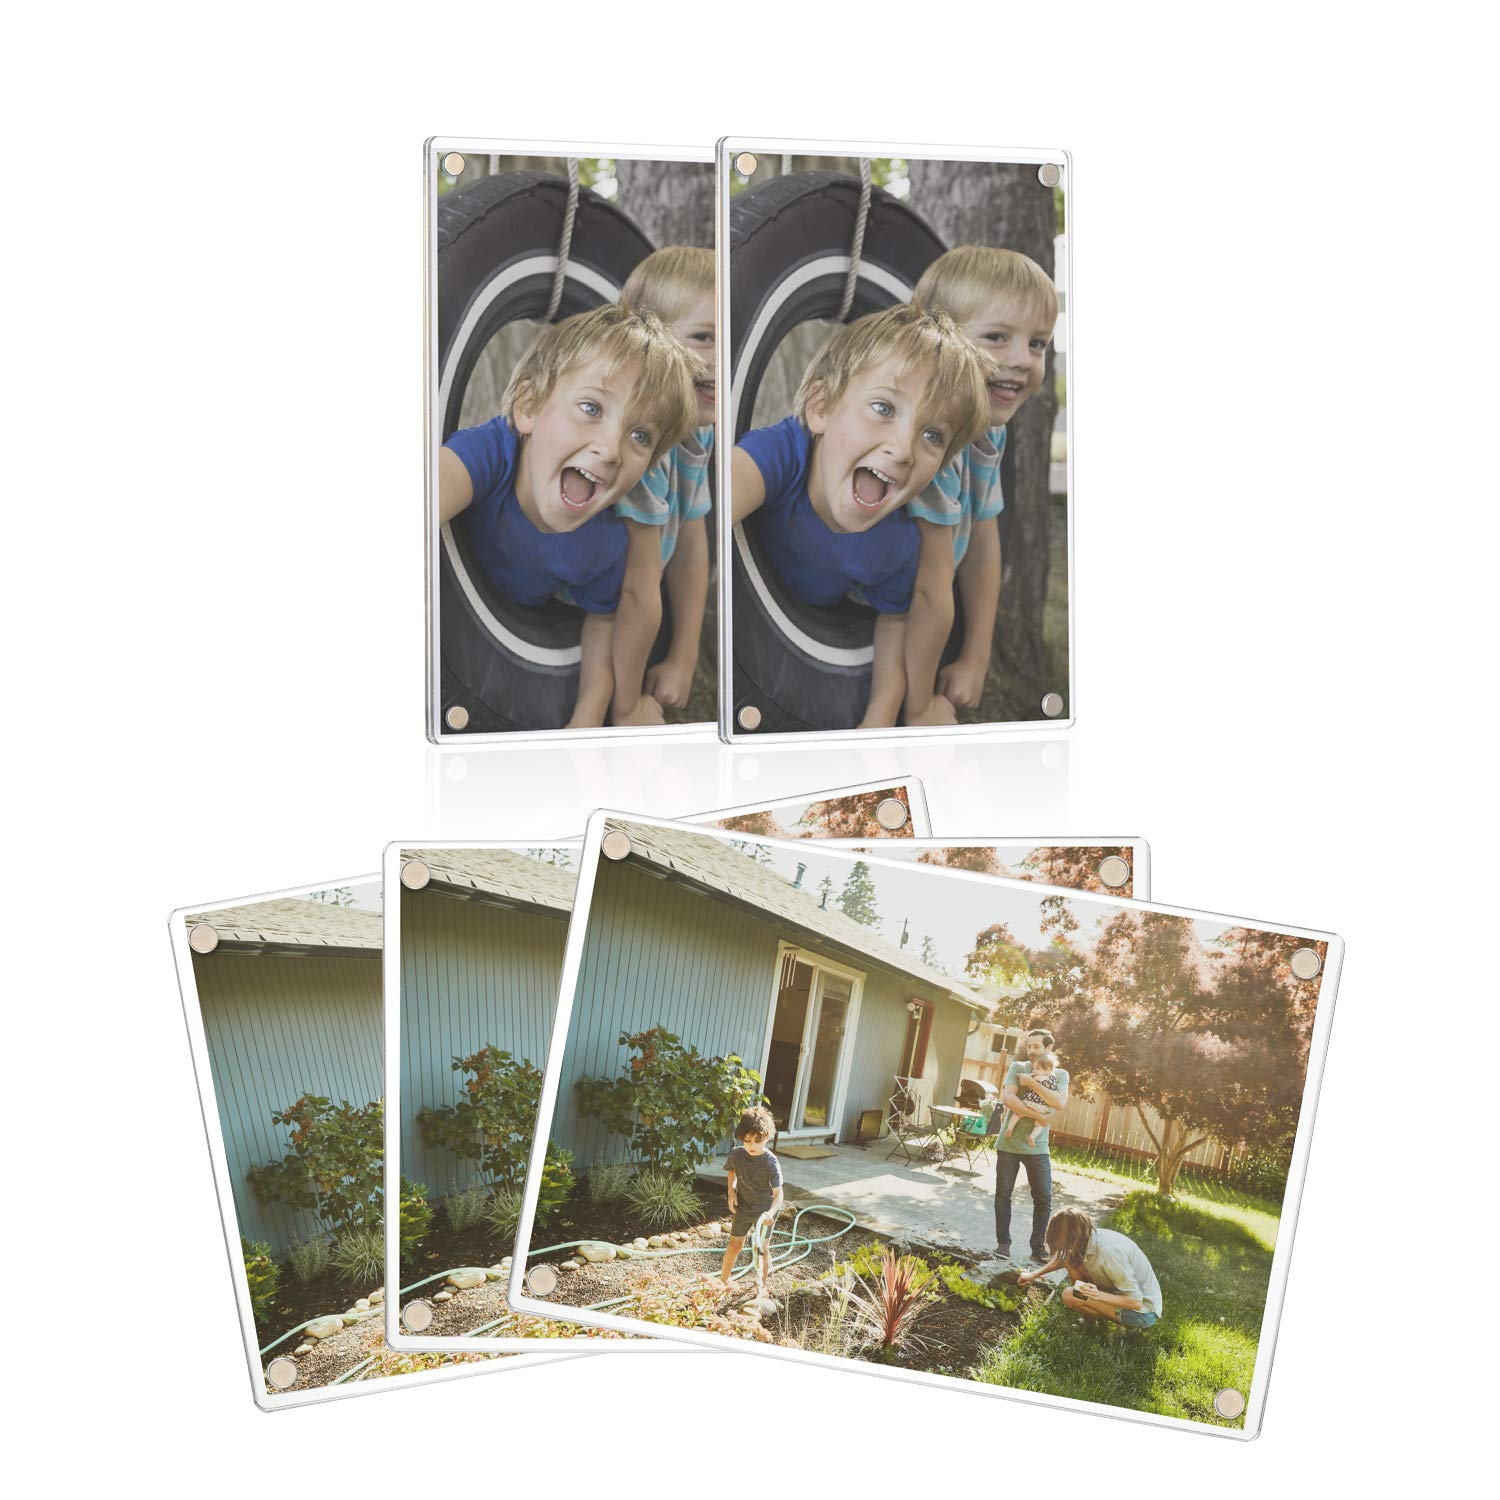 ONE WALL 4x6 Inch Acrylic Fridge Magnetic Frame, 5 PCS 2-Sided Photo Refrigerator Magnets Picture Frame for Photos, Tickets, Business Cards, Notes, Memos, Paintings Display by ONE WALL